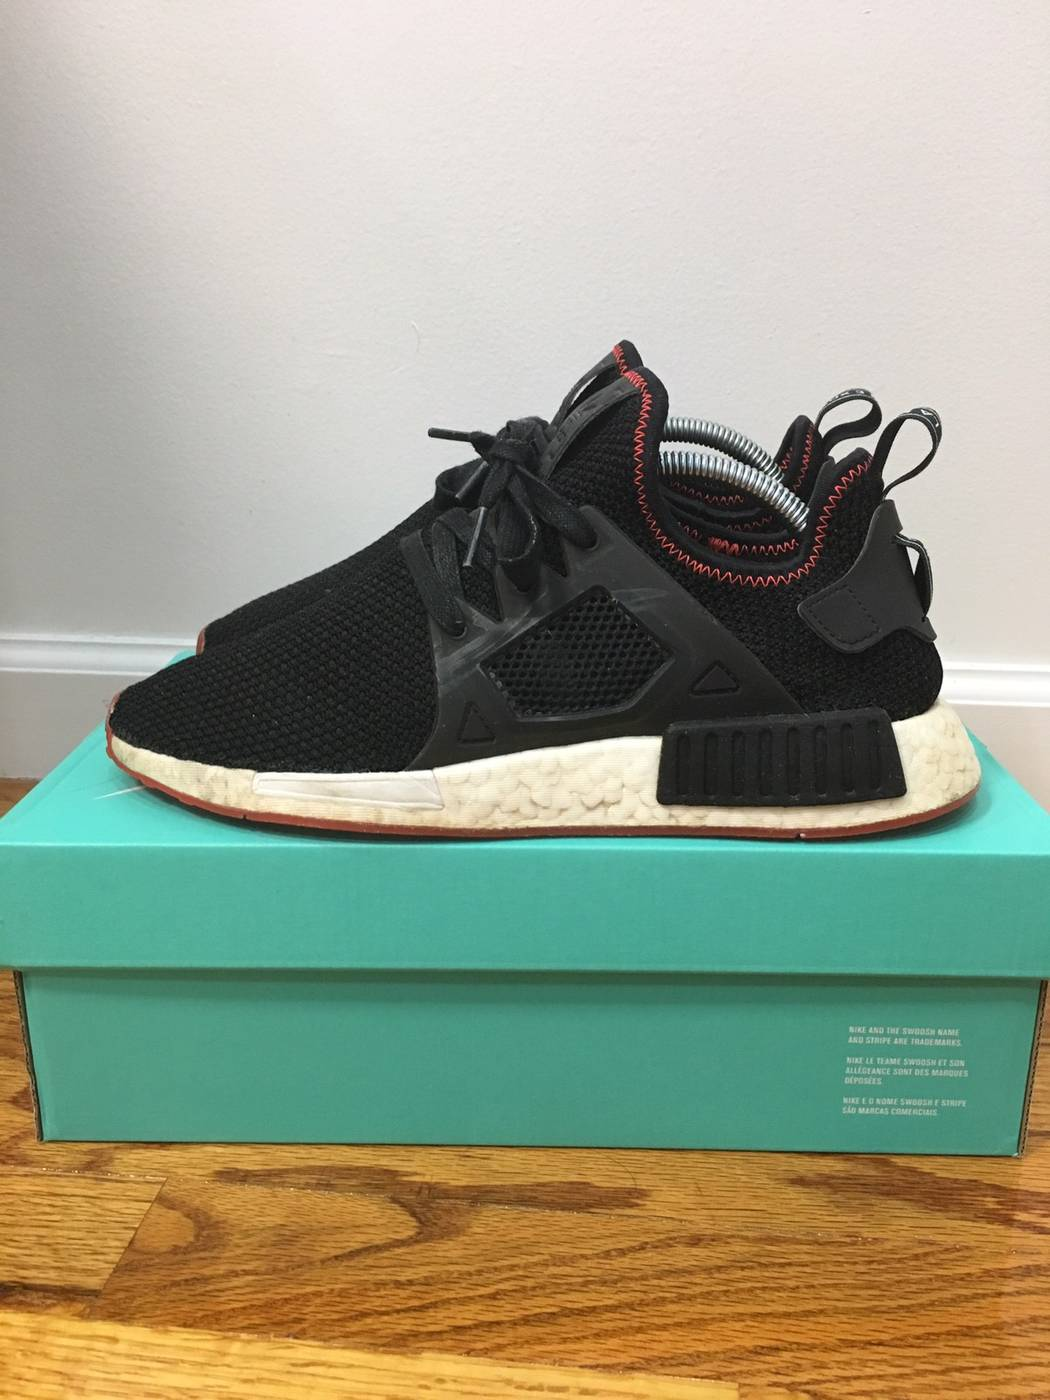 on sale b5fef b9ee0 Adidas Nmd XR1 Bred Colorway Size 8 - Low-Top Sneakers for ...